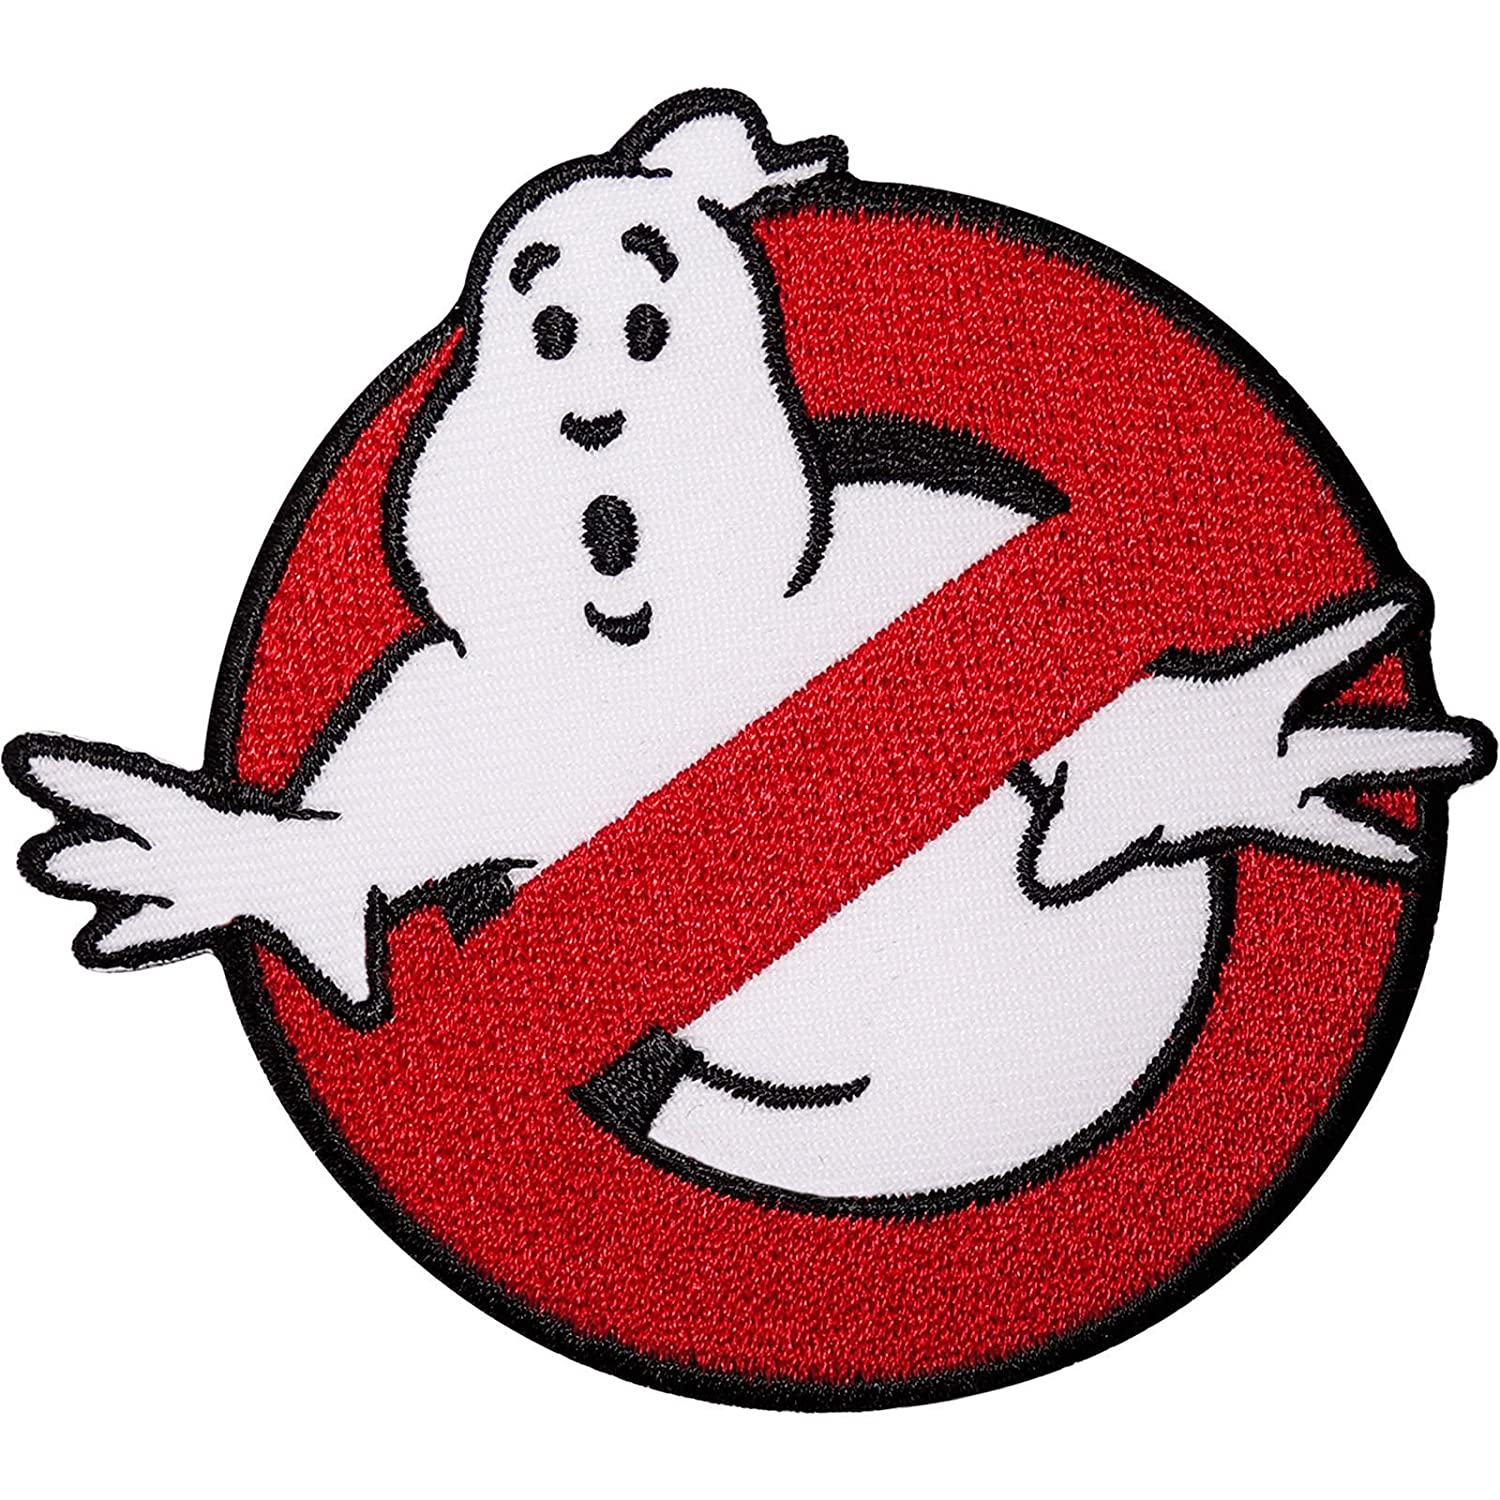 Fat-catz-copy-catz GhostBusters Logo Embroidered Iron on Sew on Patch HQ